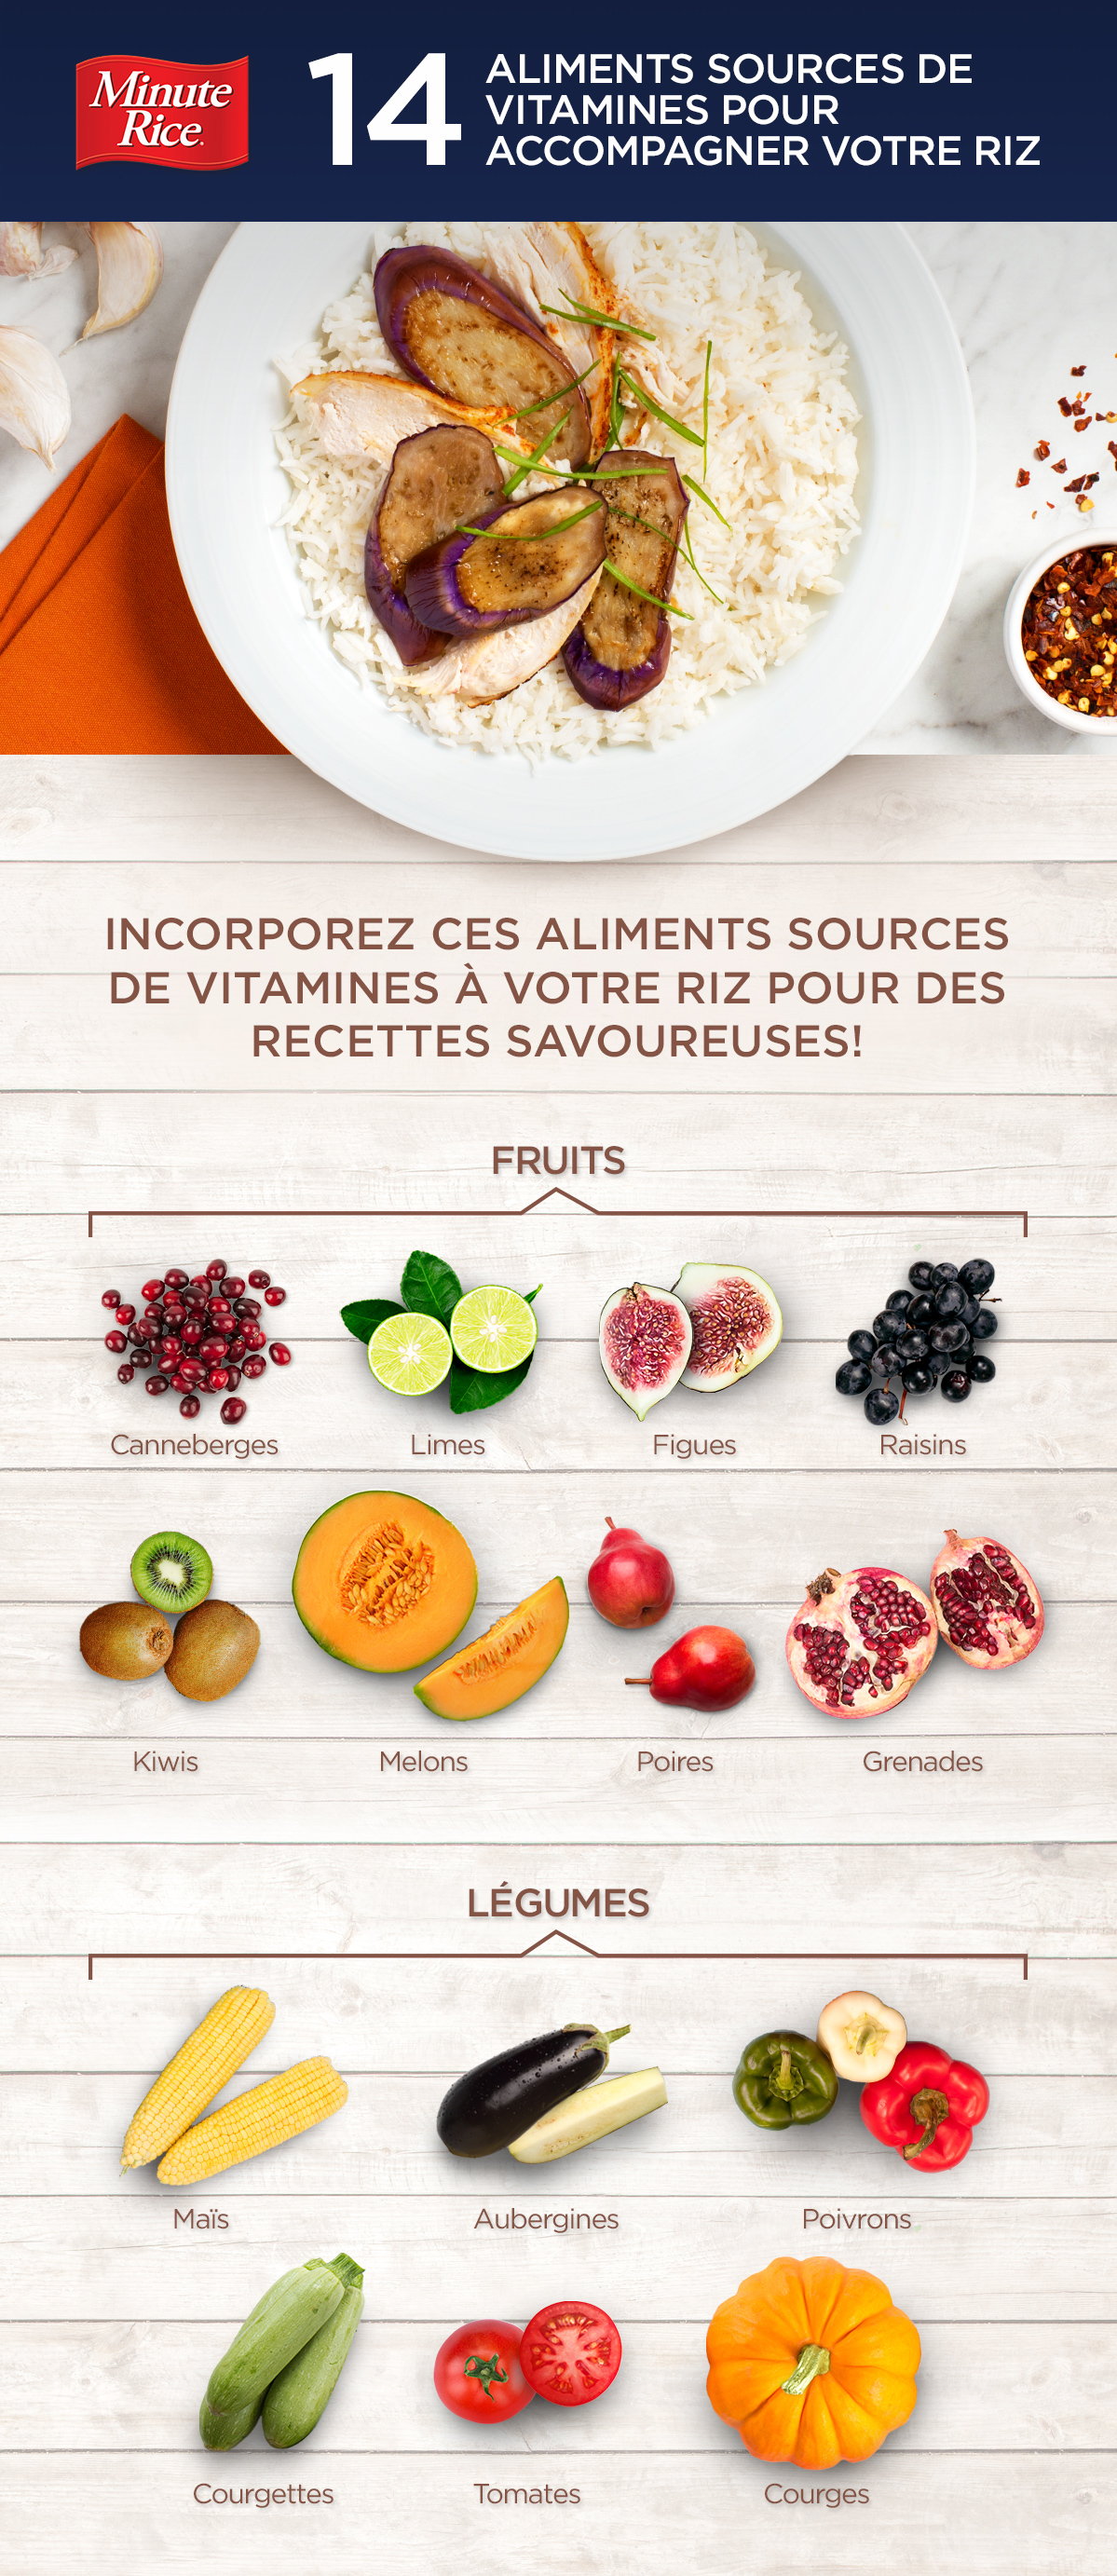 14 aliments sources de vitamines